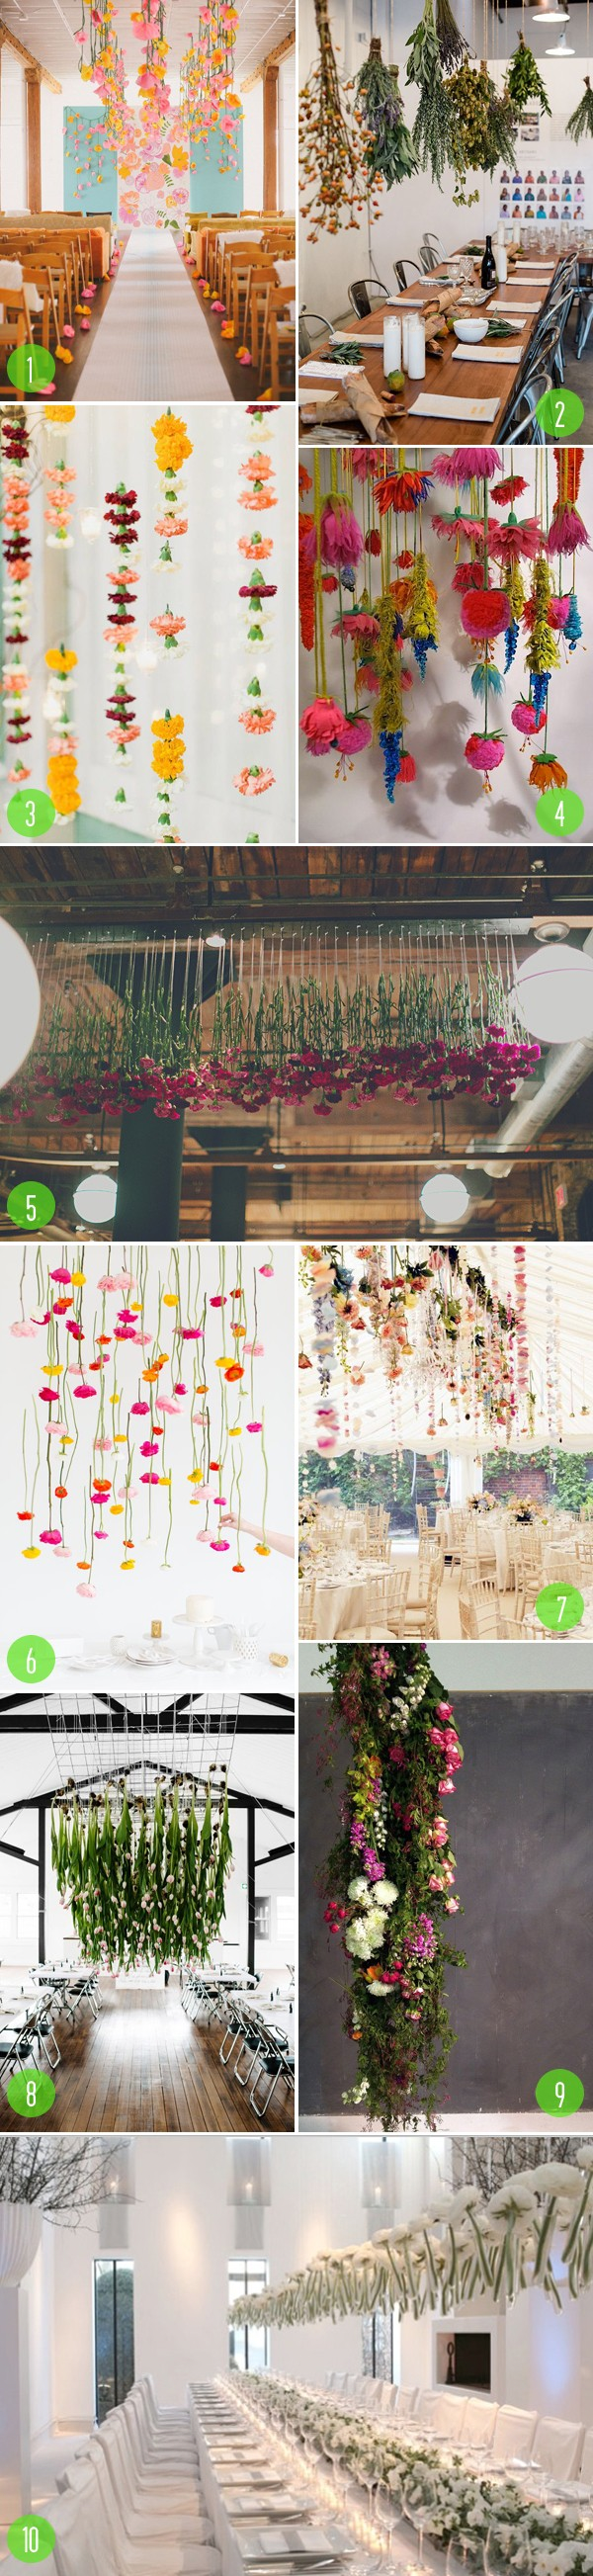 top 10: hanging florals